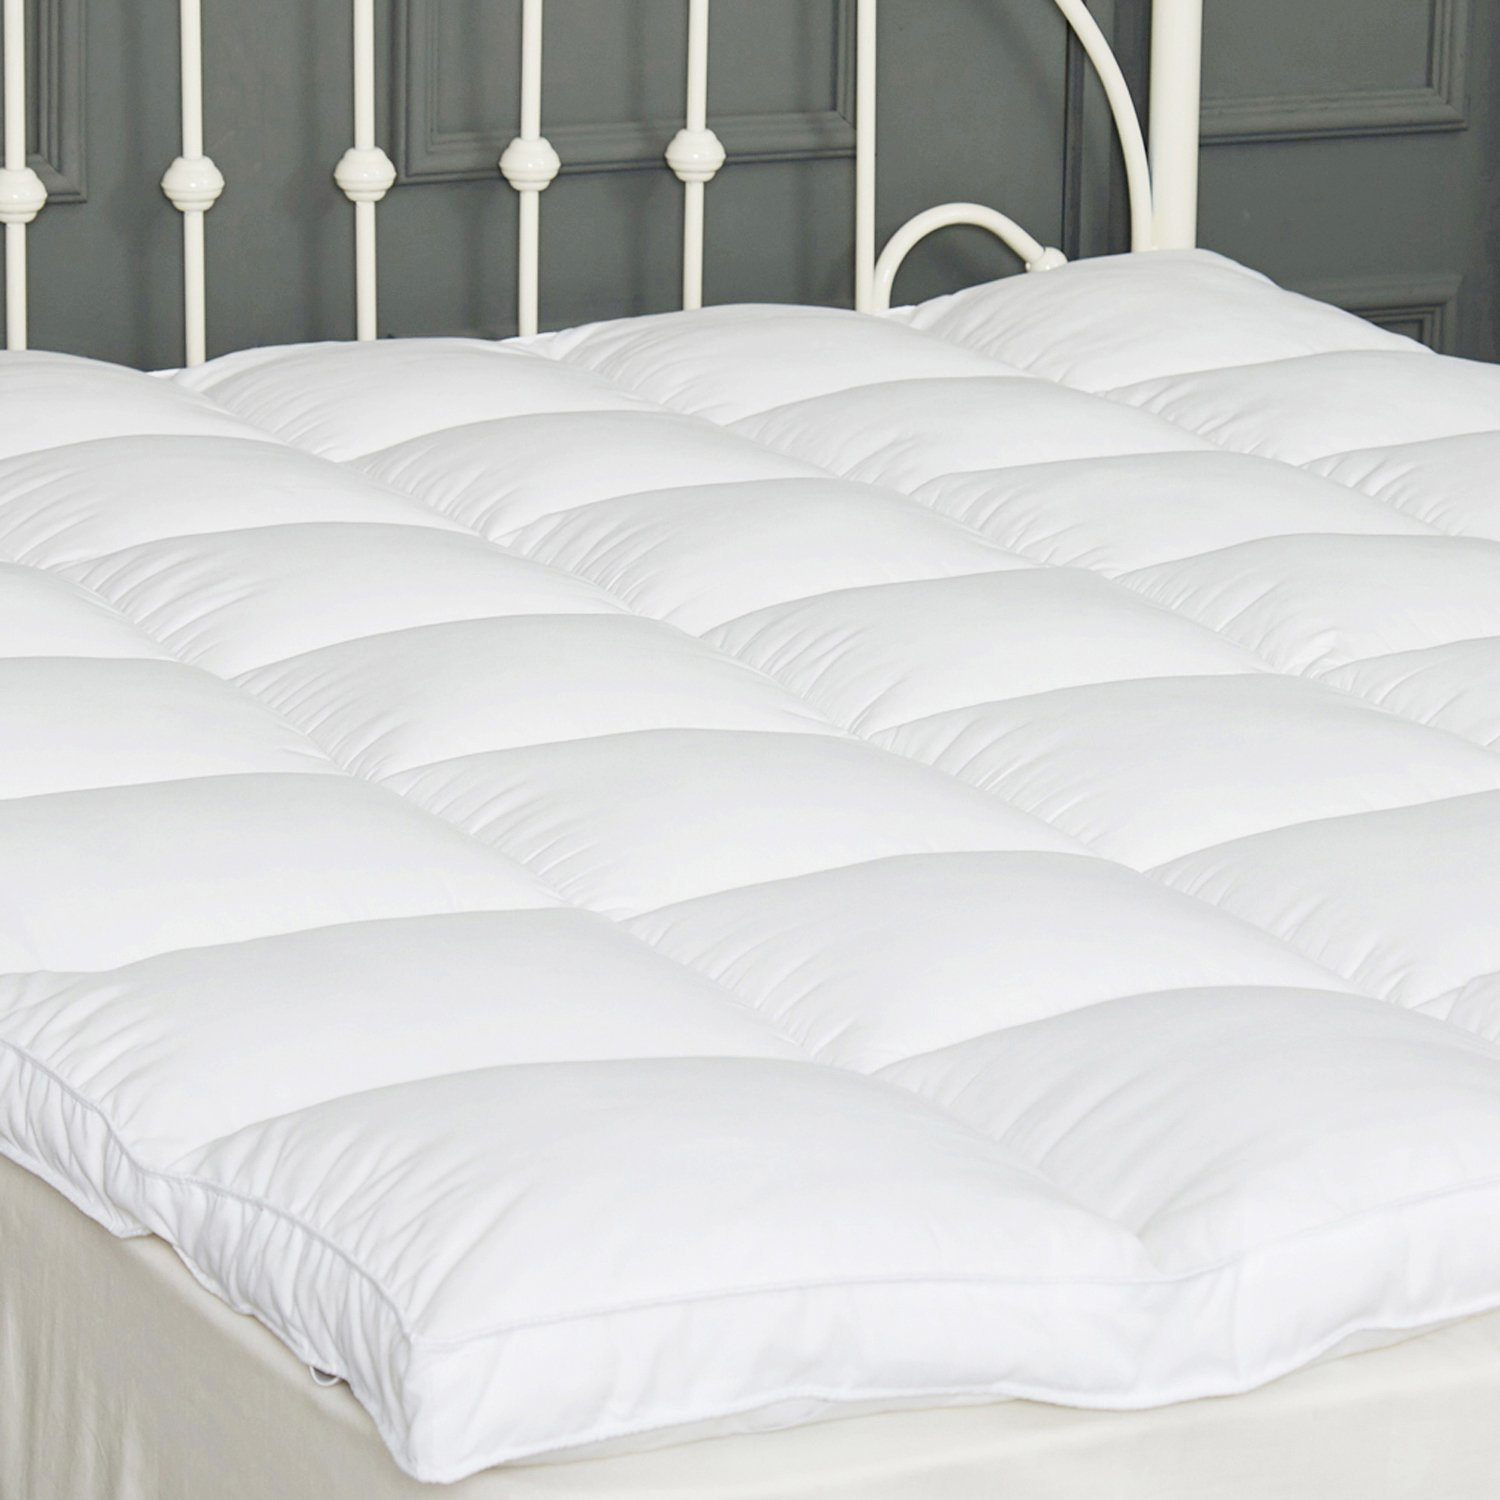 "Mattress Topper Full Down Alternative - DUO-V HOME Quilted Pillow Top Mattress Pad 2"" Thick Hypoallergenic with 4 Anchor Bands, Soft and Firm, 5 Year Warranty"